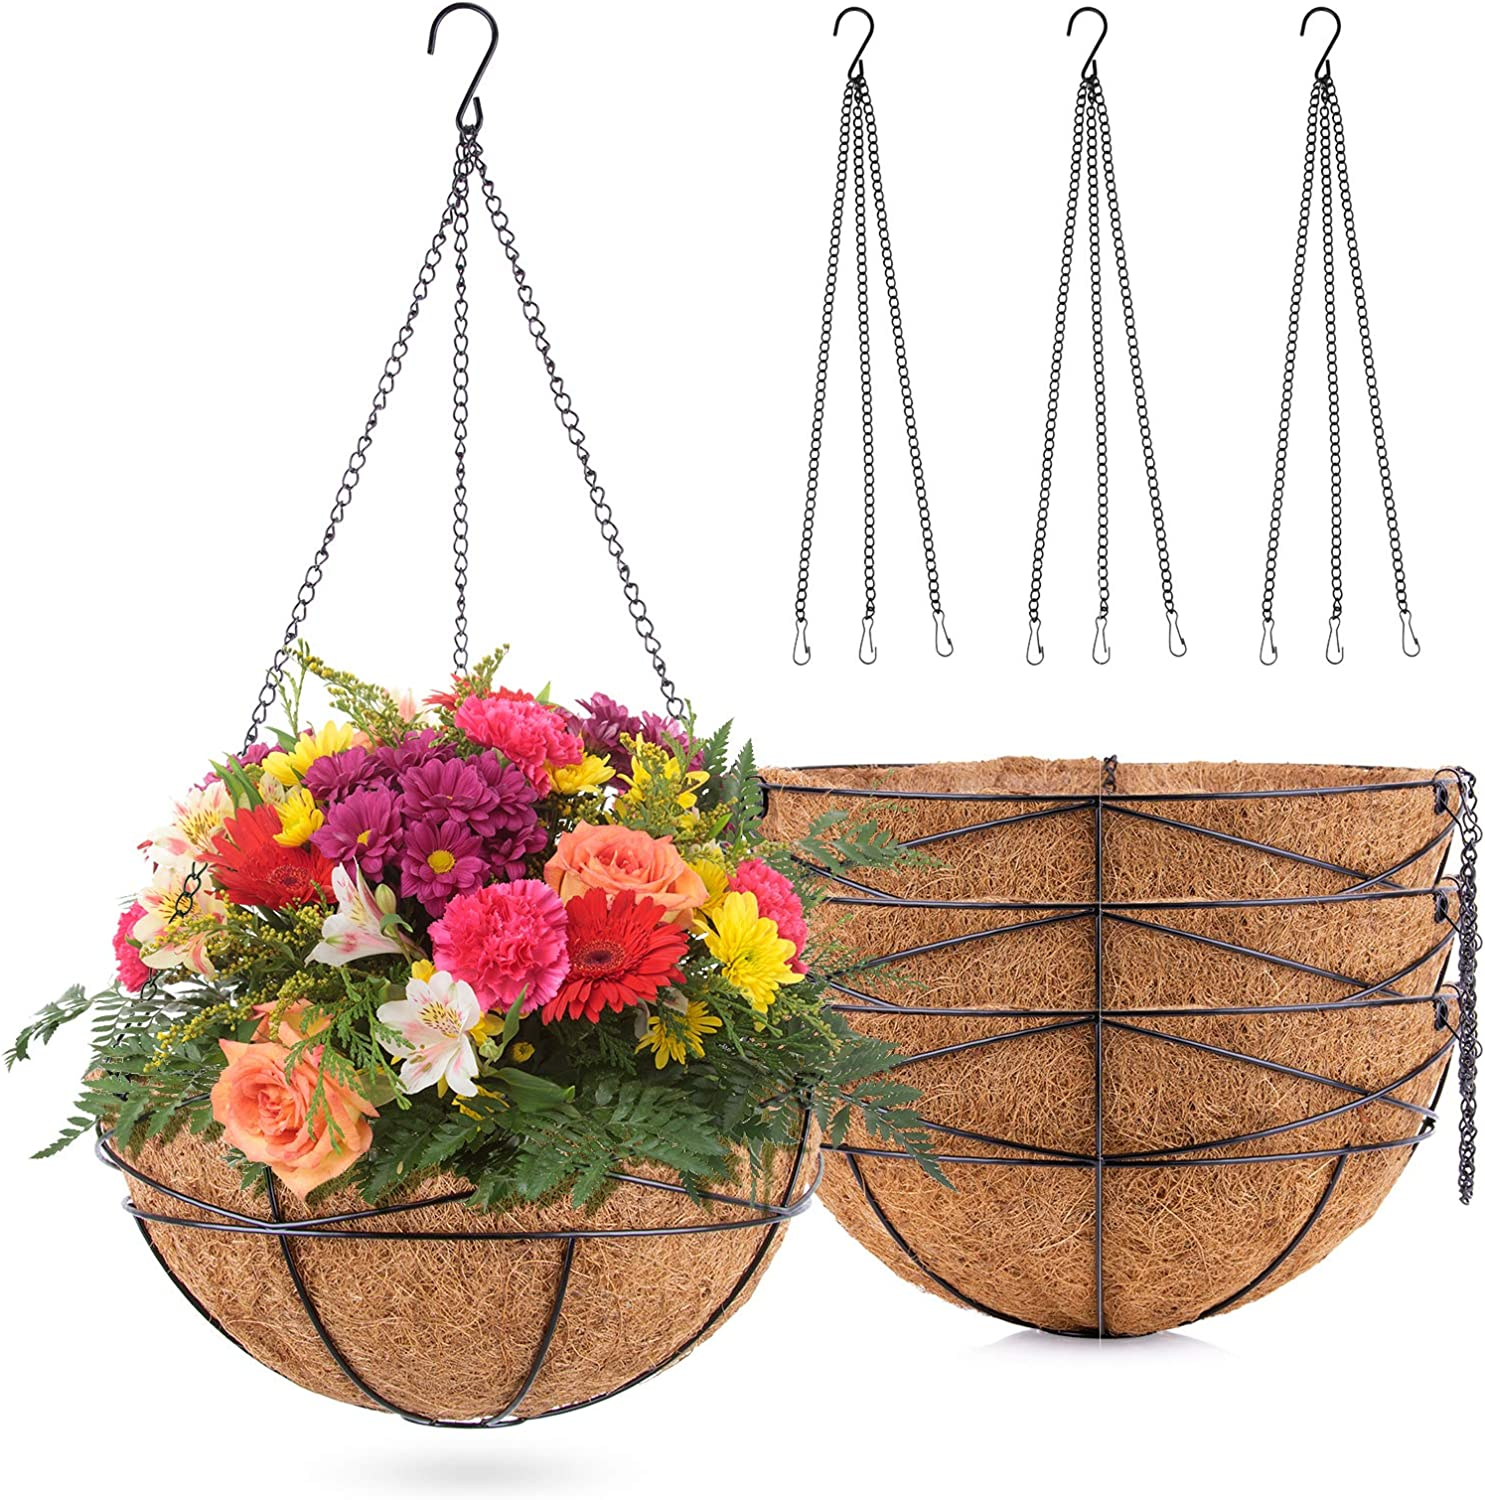 UERMEI 4 Pack Hanging Baskets for Plants - 12INCH Hanging Planters with Natural Coconut Liner   Plants Friendly Hanging Baskets Outdoor for Garden Decor   Housewarming Gift